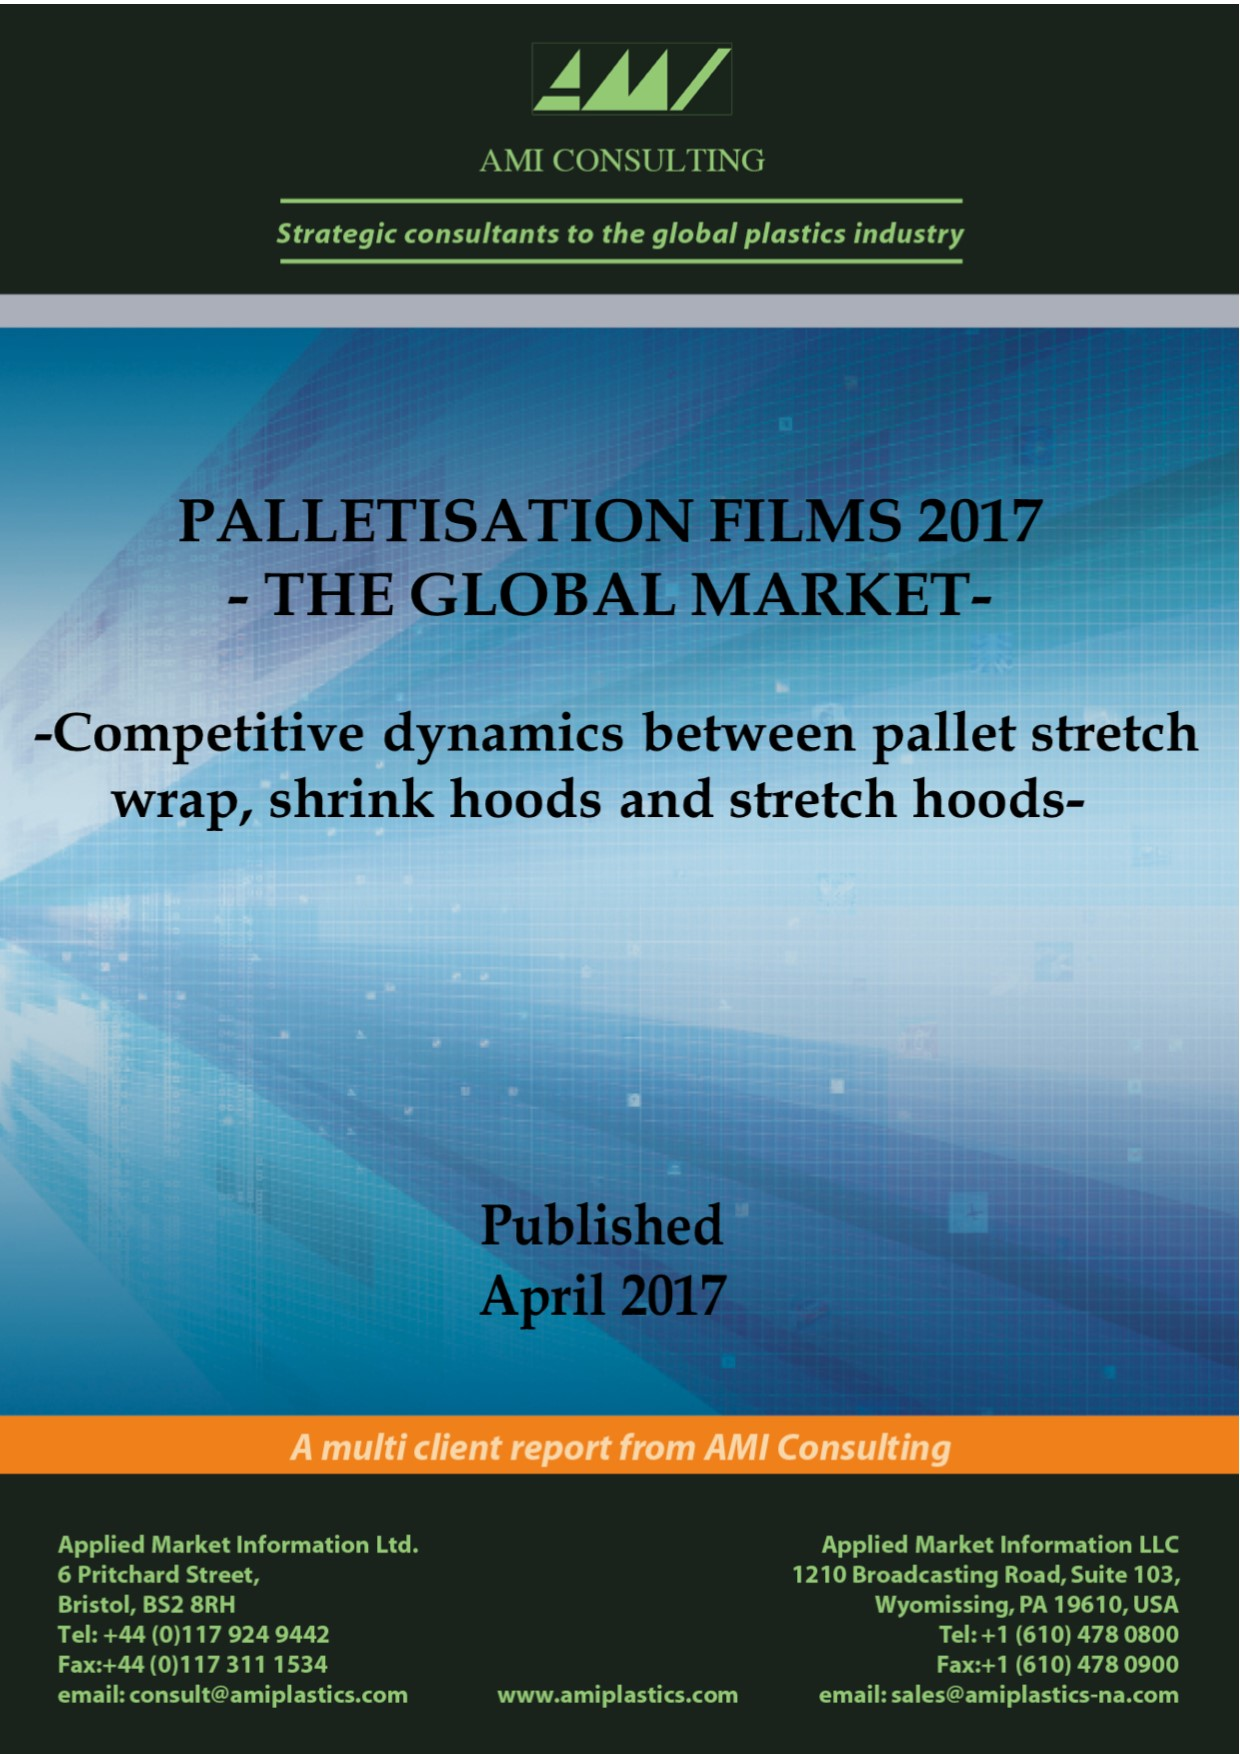 Palletisation films the global market 2017